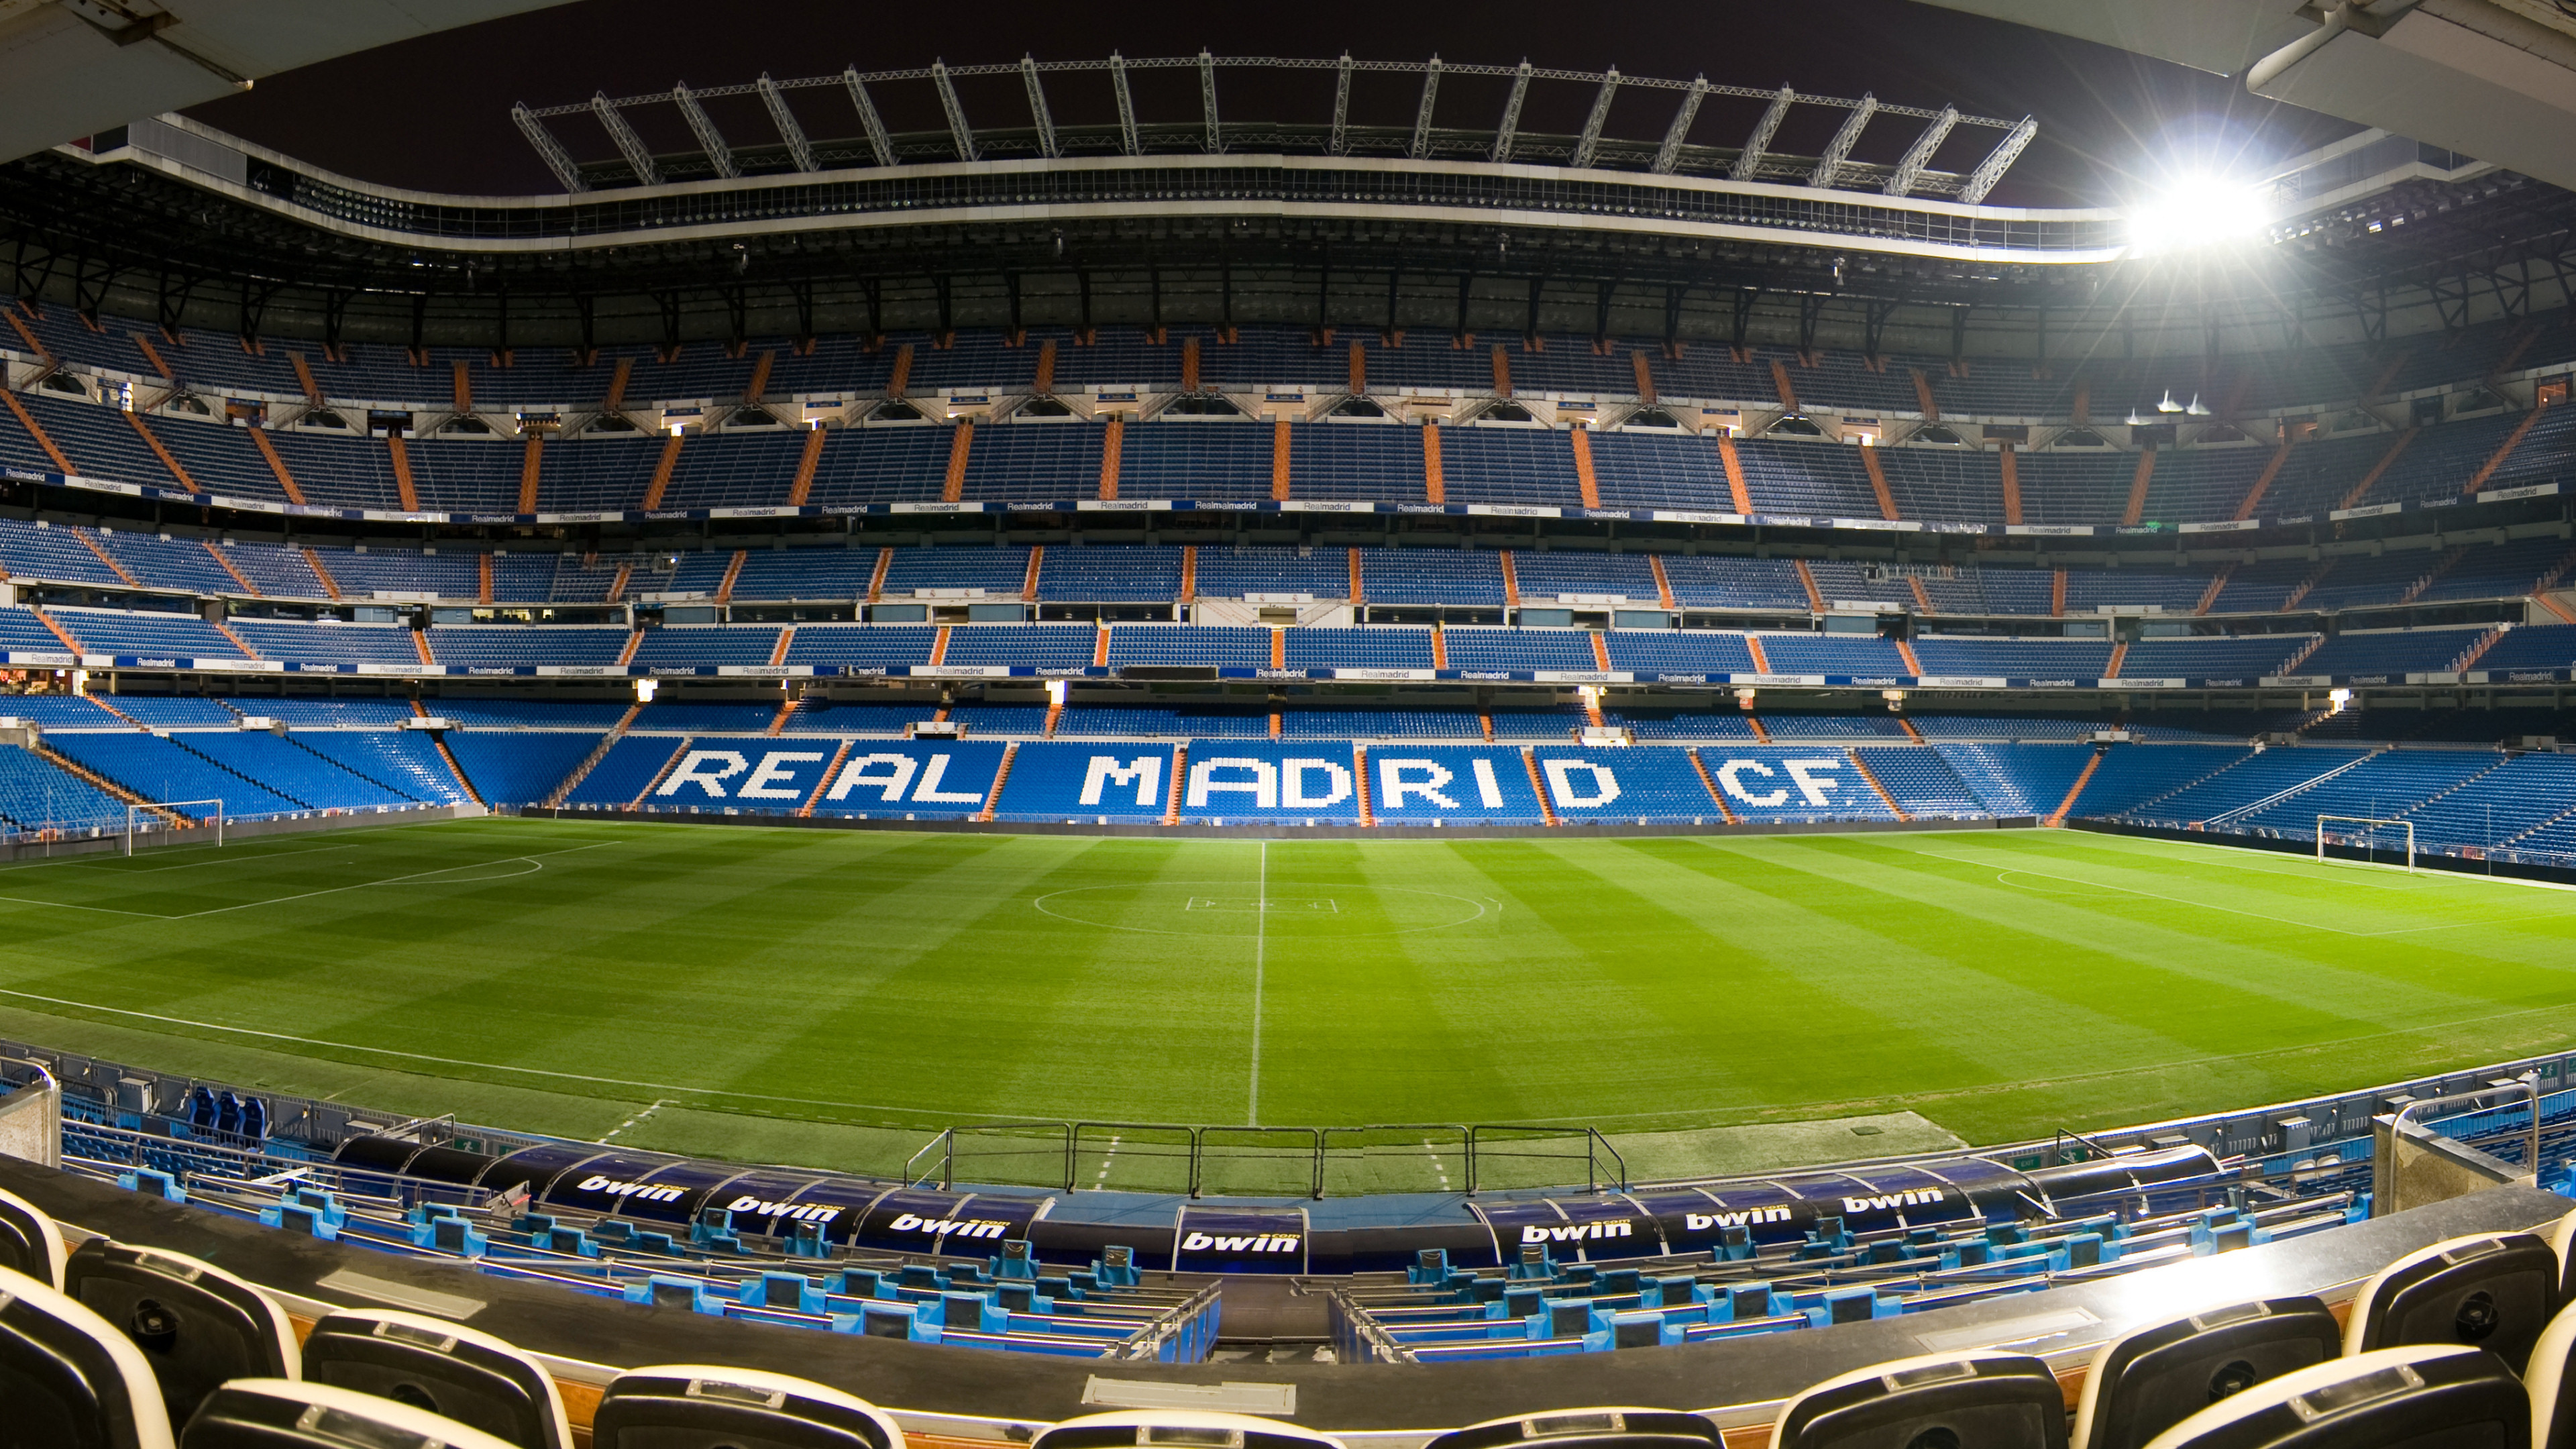 3840x2160 Real Madrid Stadium Wallpaper HD.